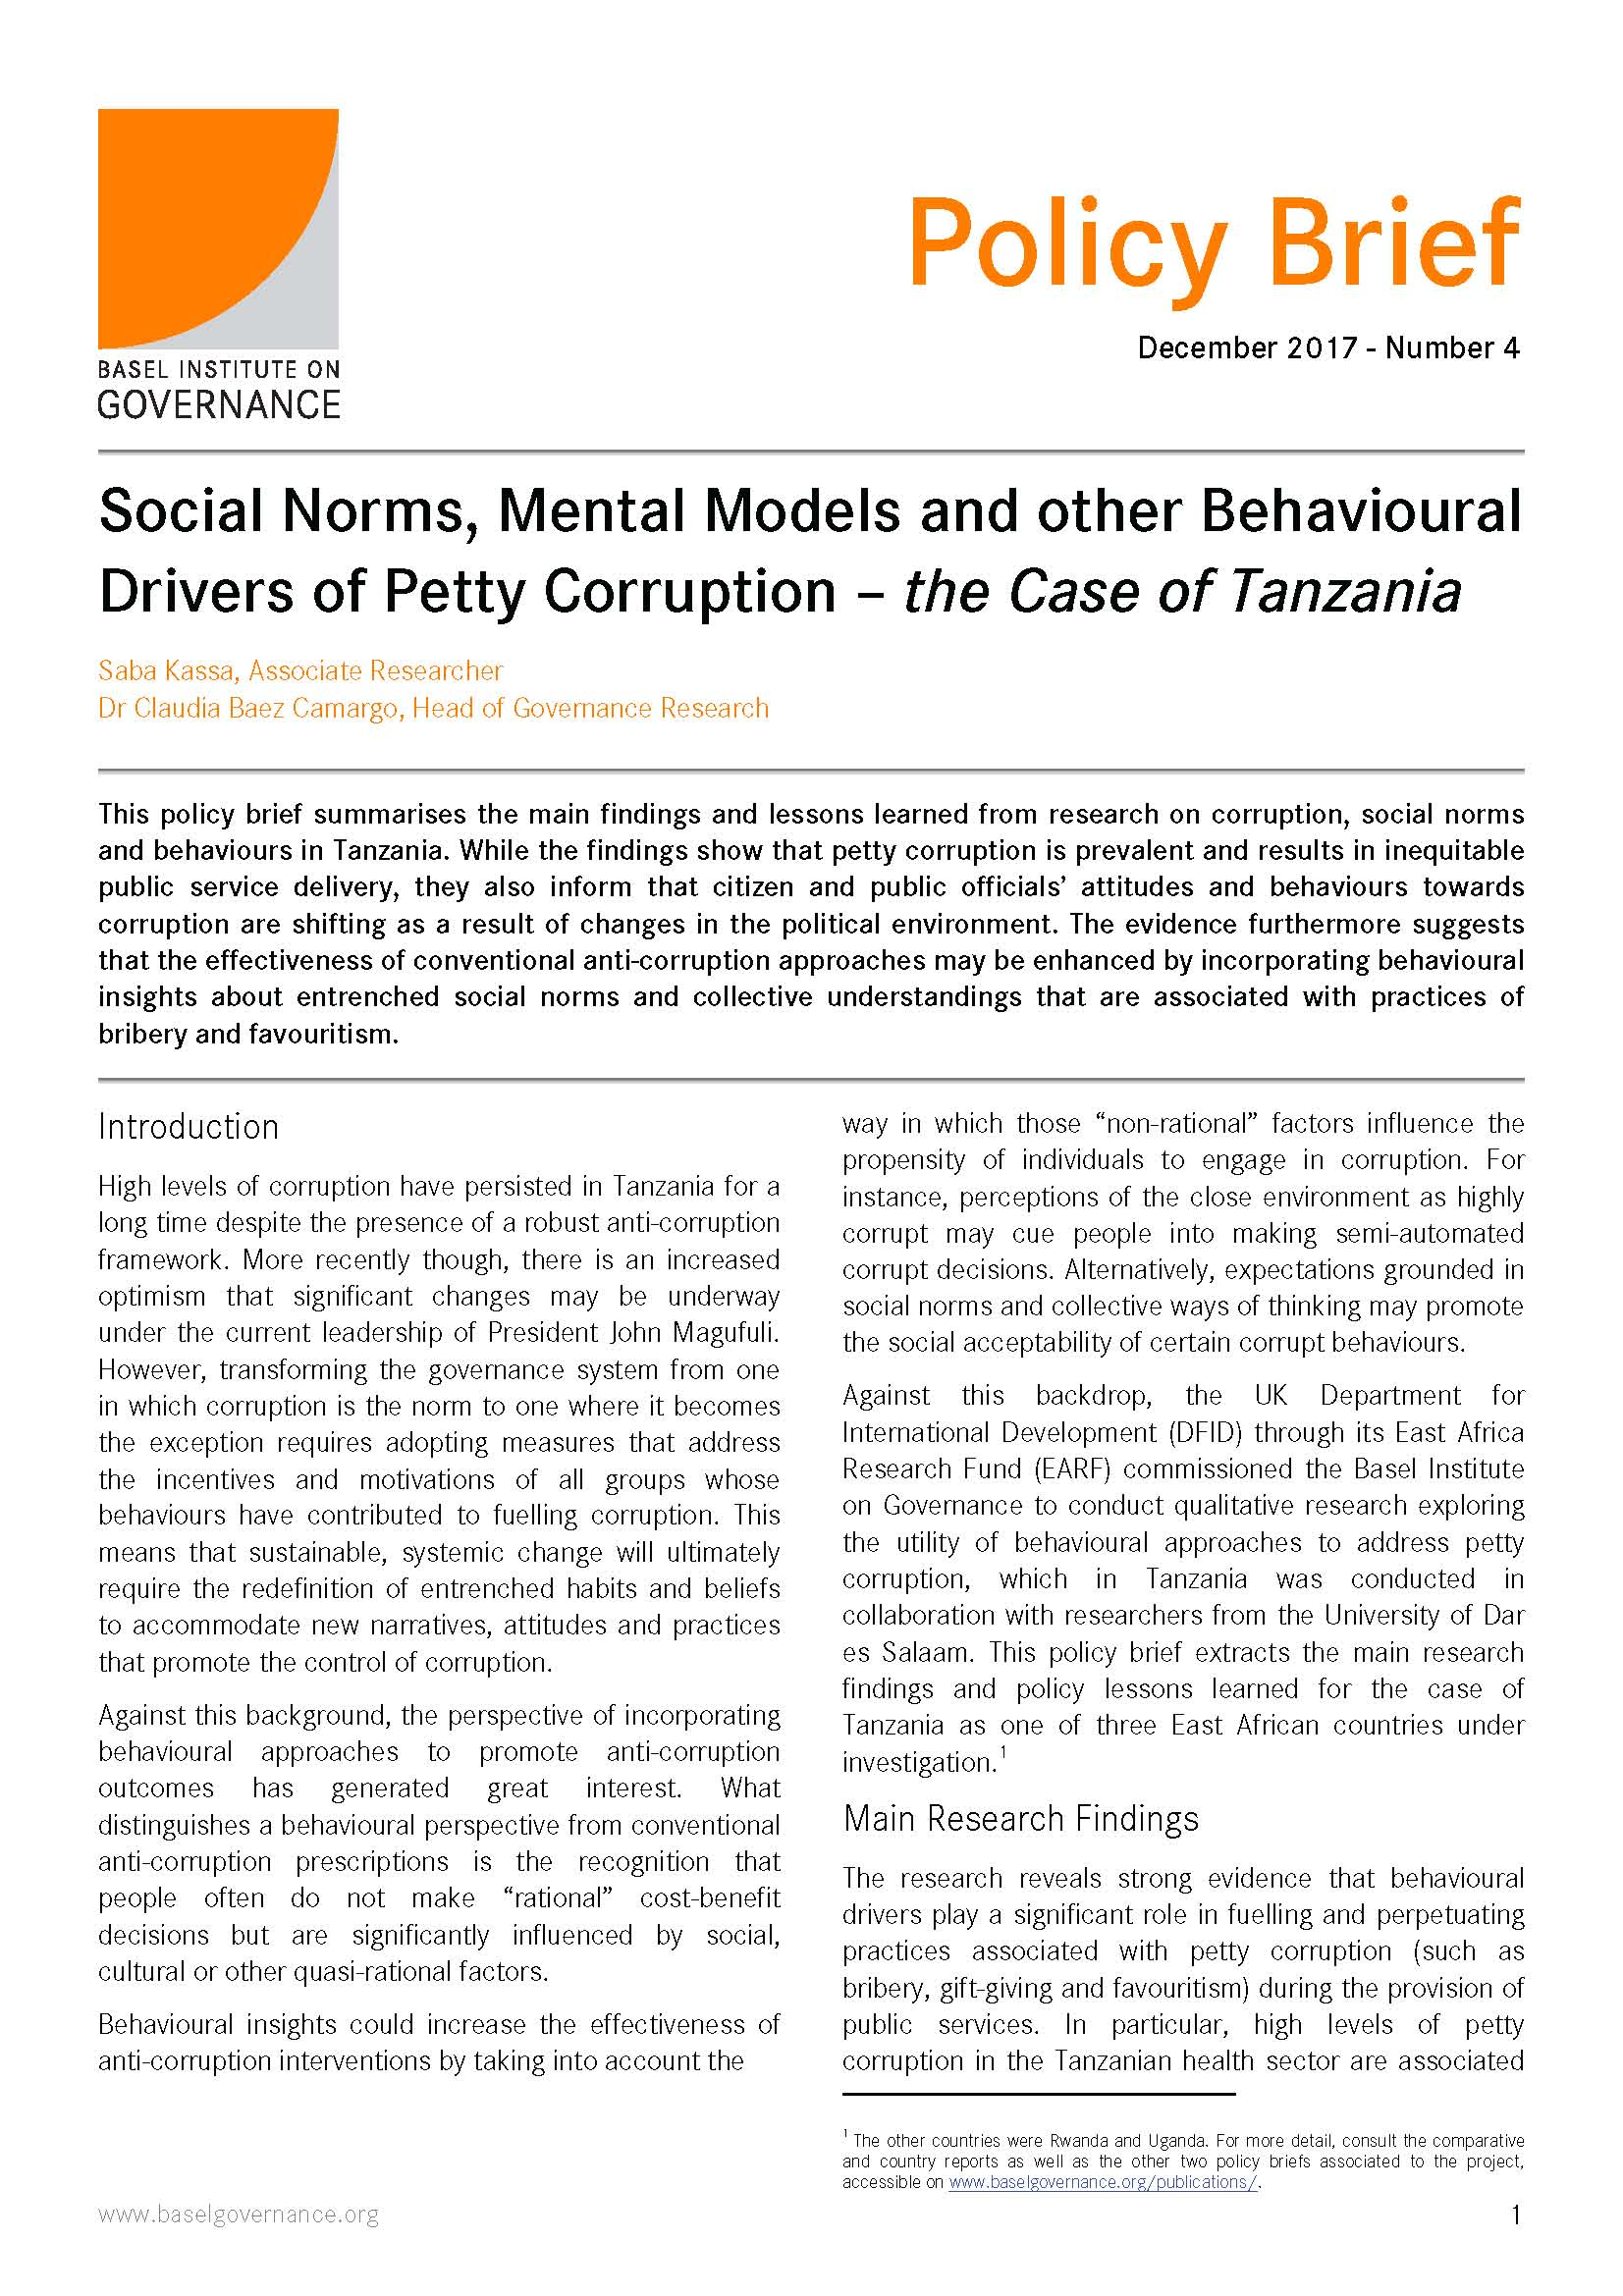 First page of Tanzania policy brief